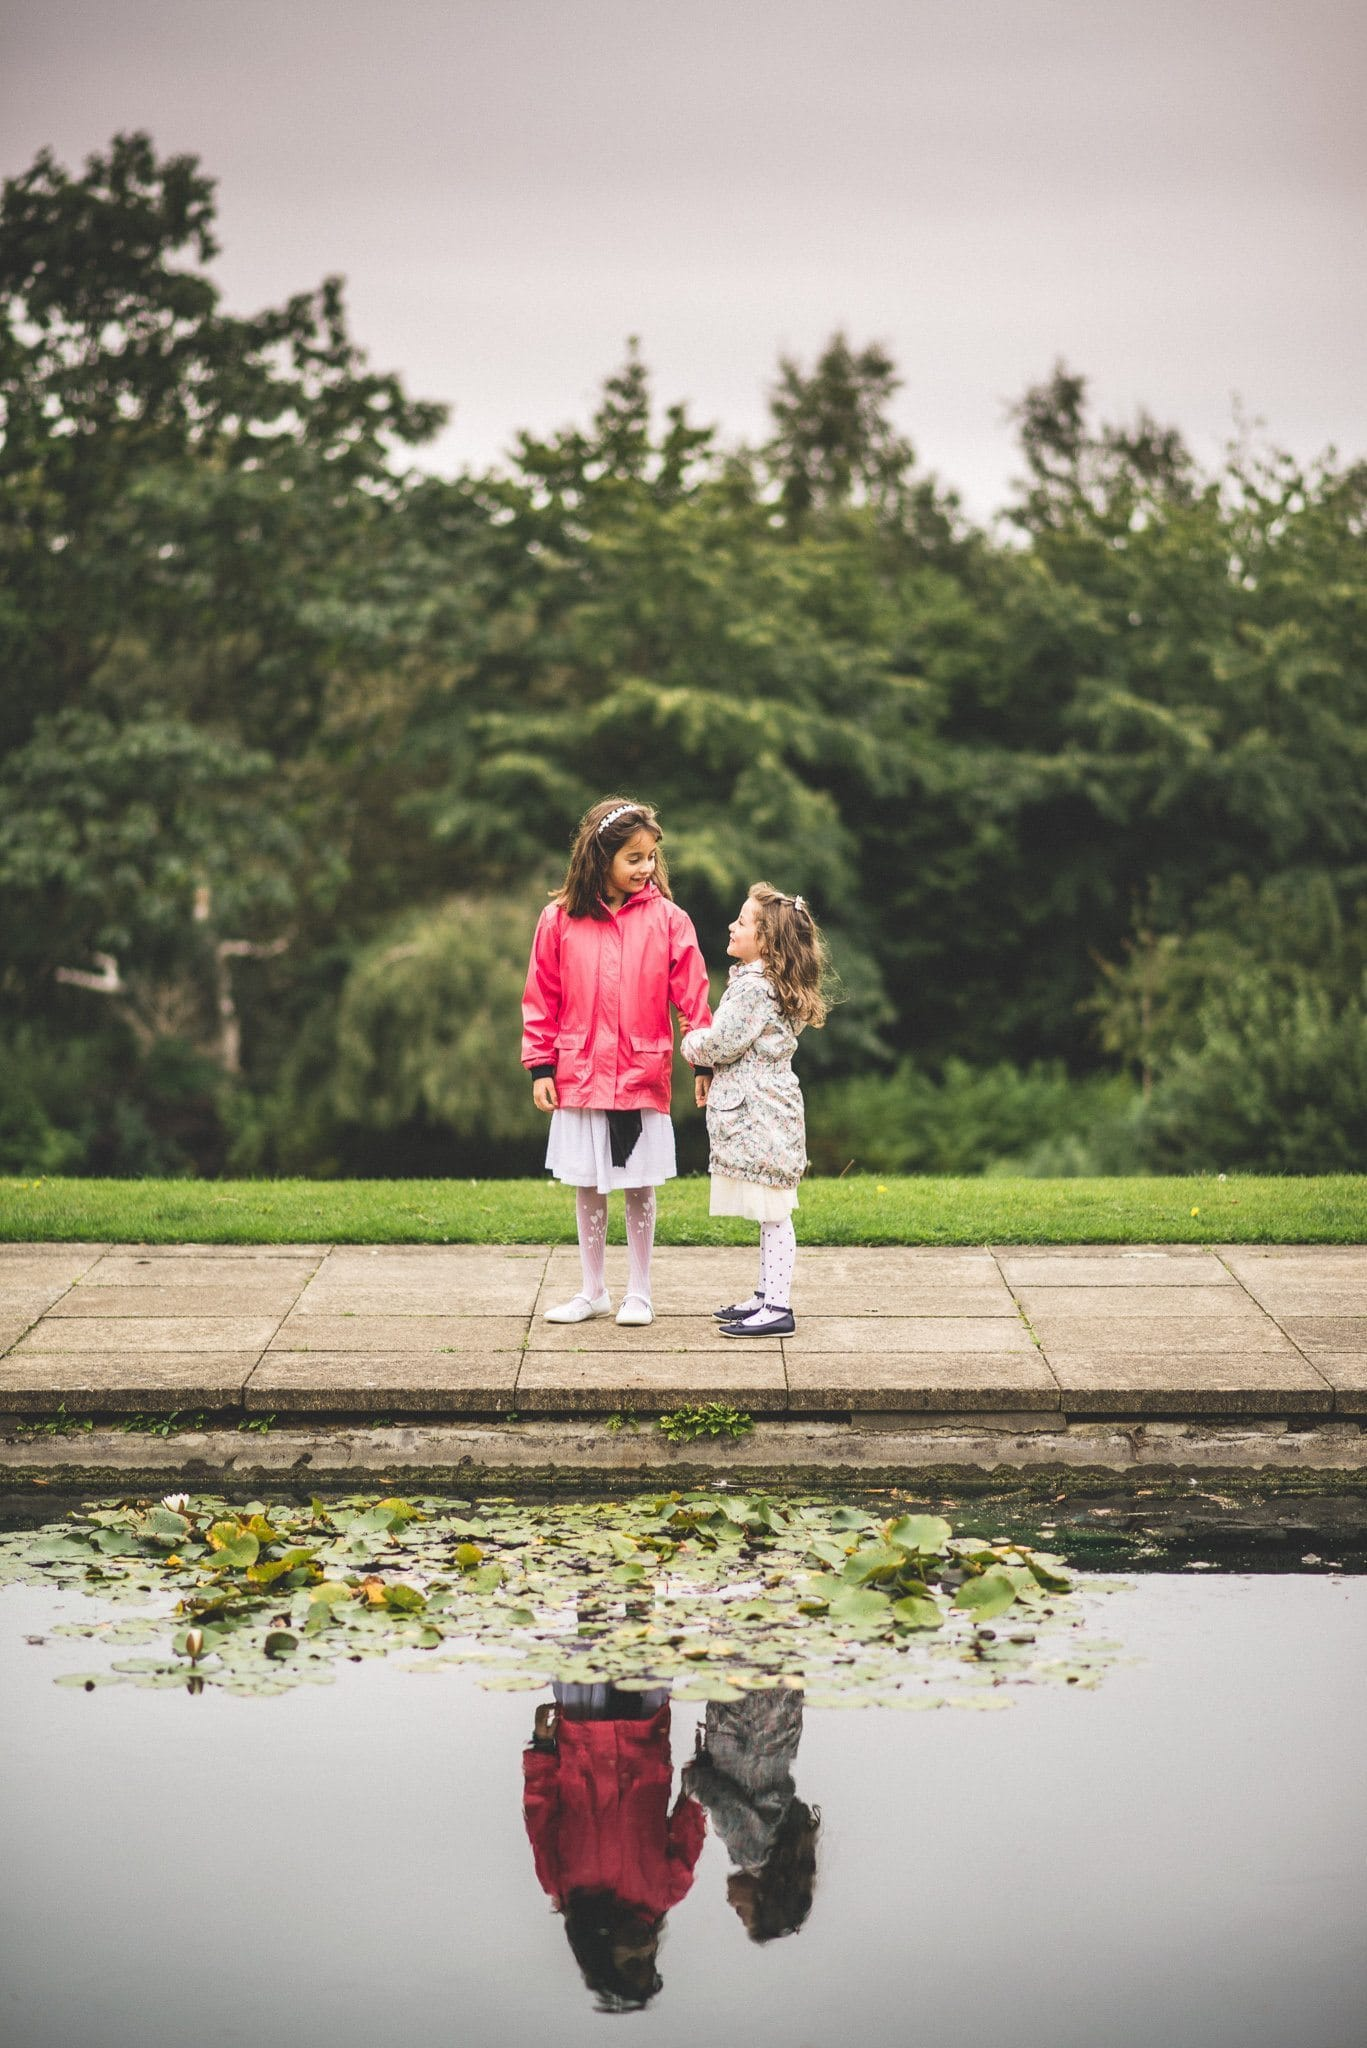 The flower girls hold hands standing at the edge of an ornamental pond